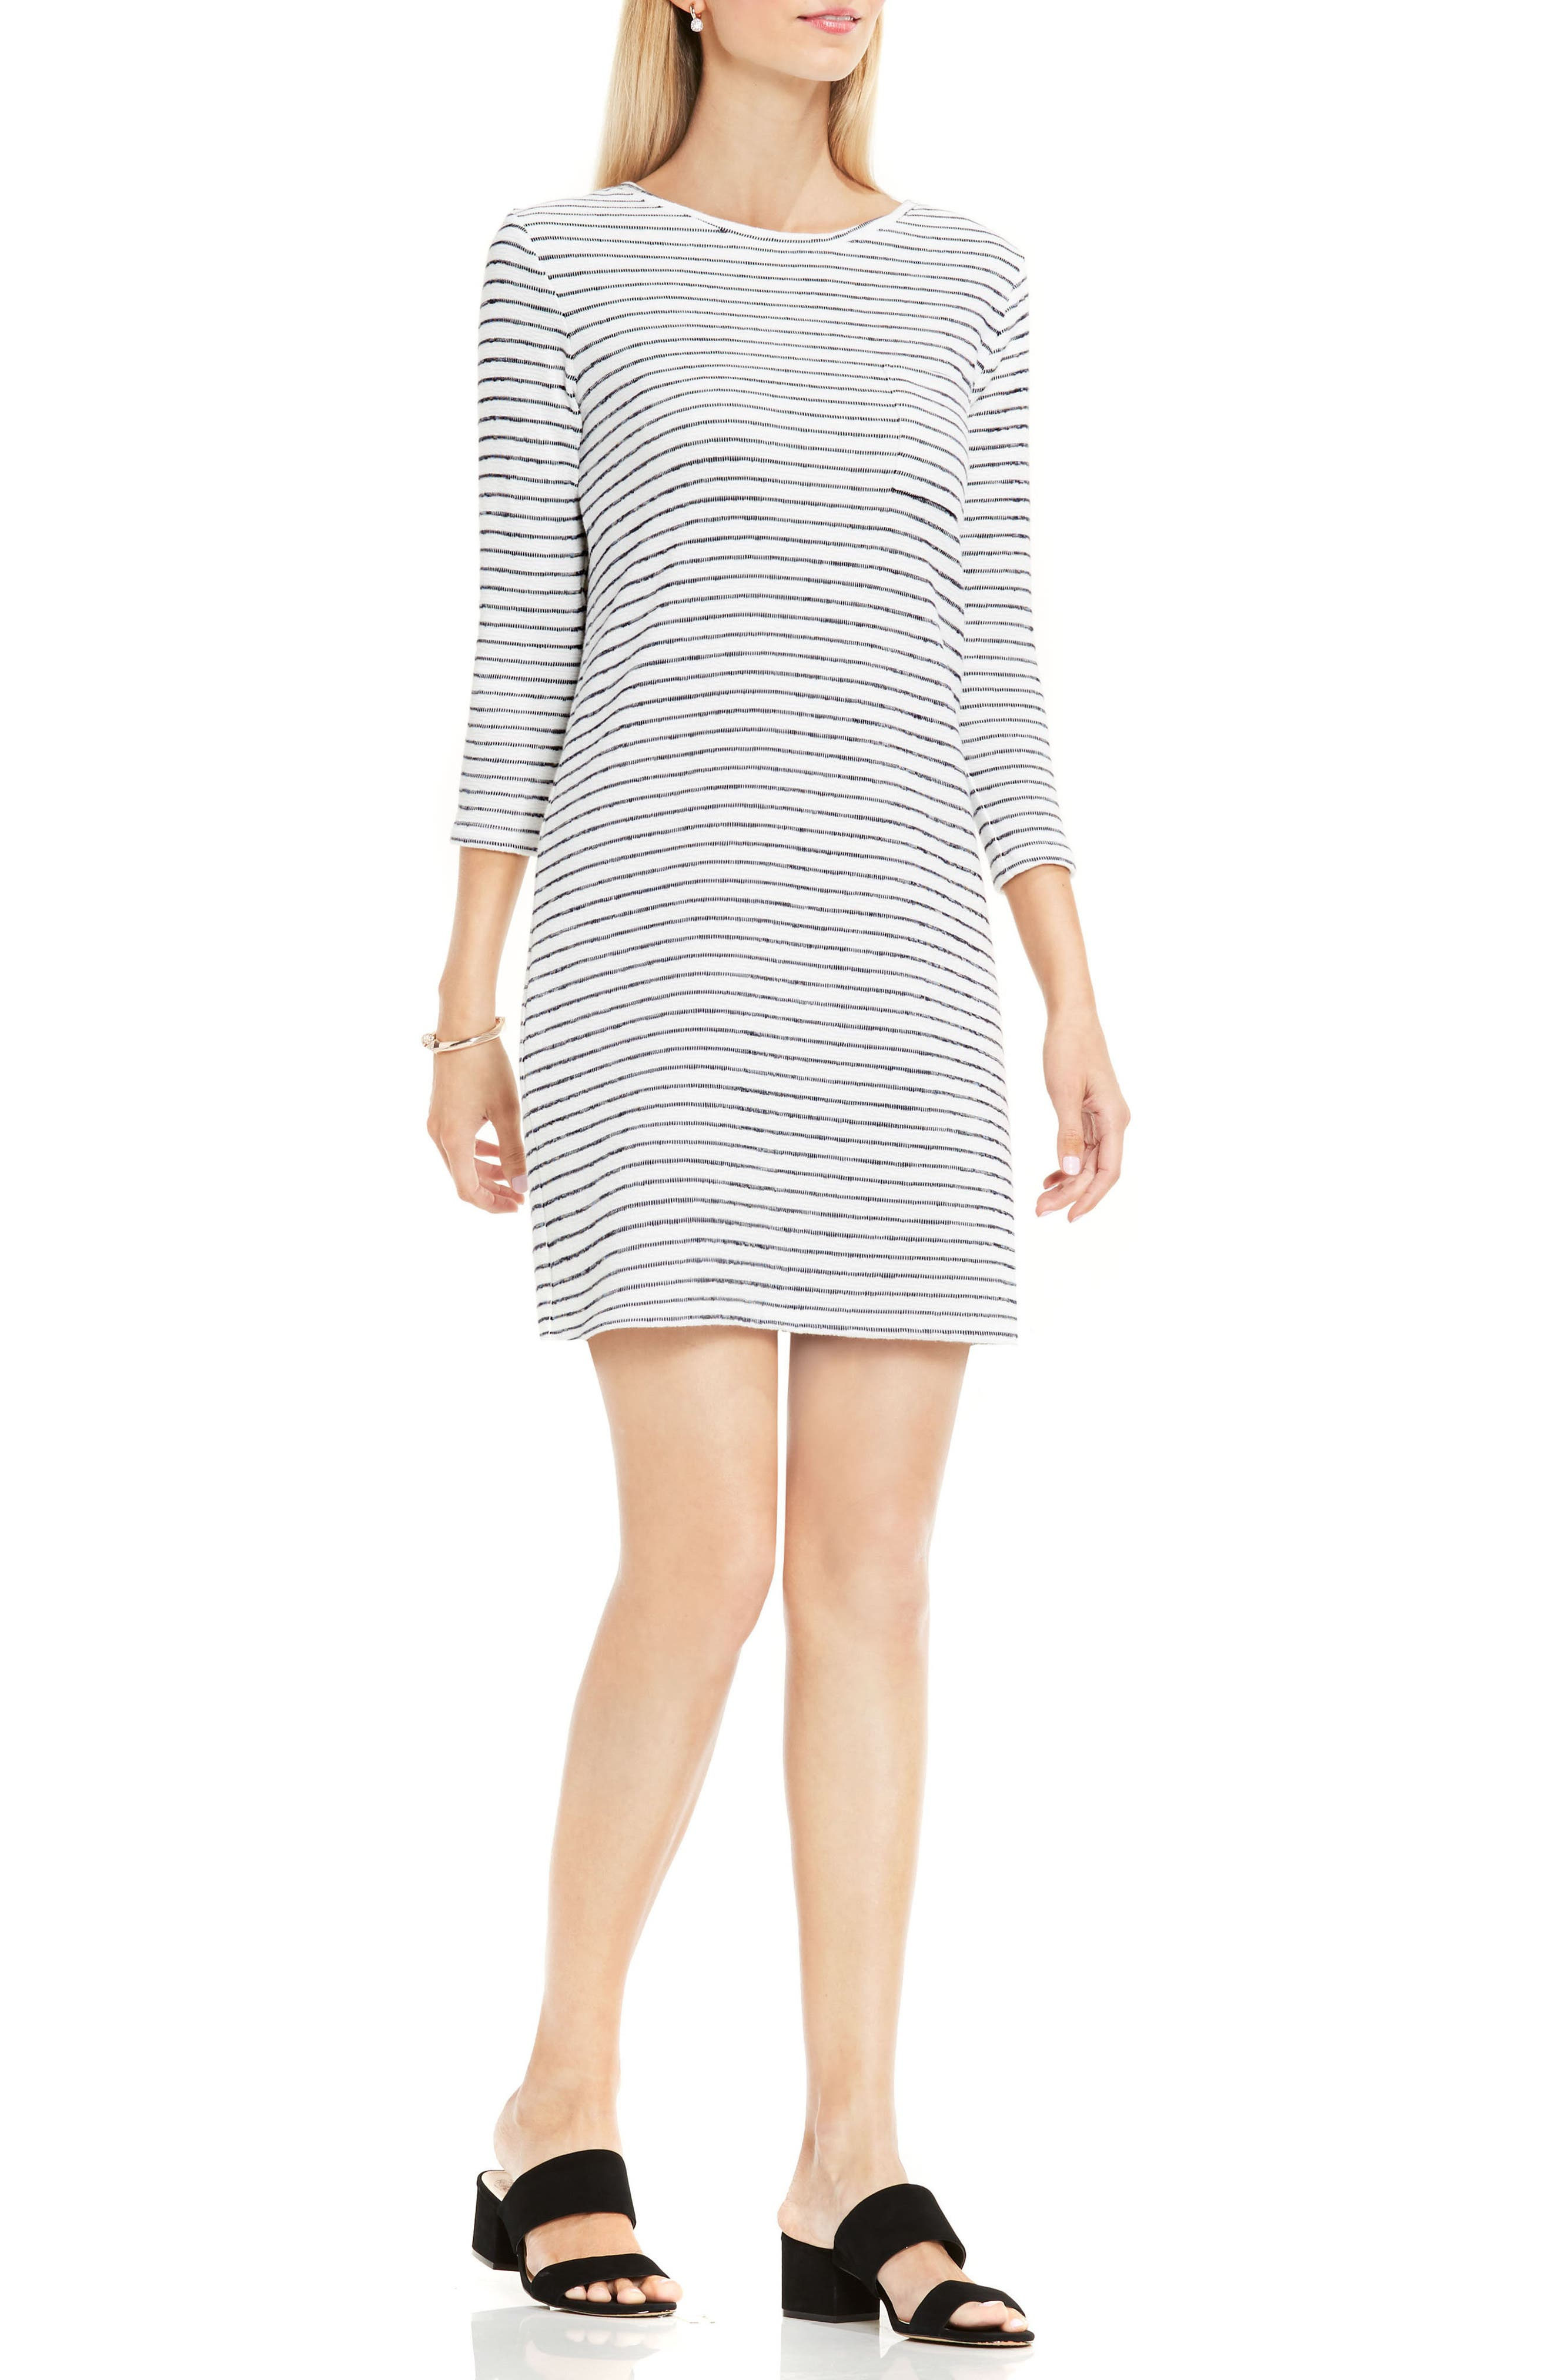 Main Image - Two by Vince Camuto Nautical Stripe Button Back Terry Dress